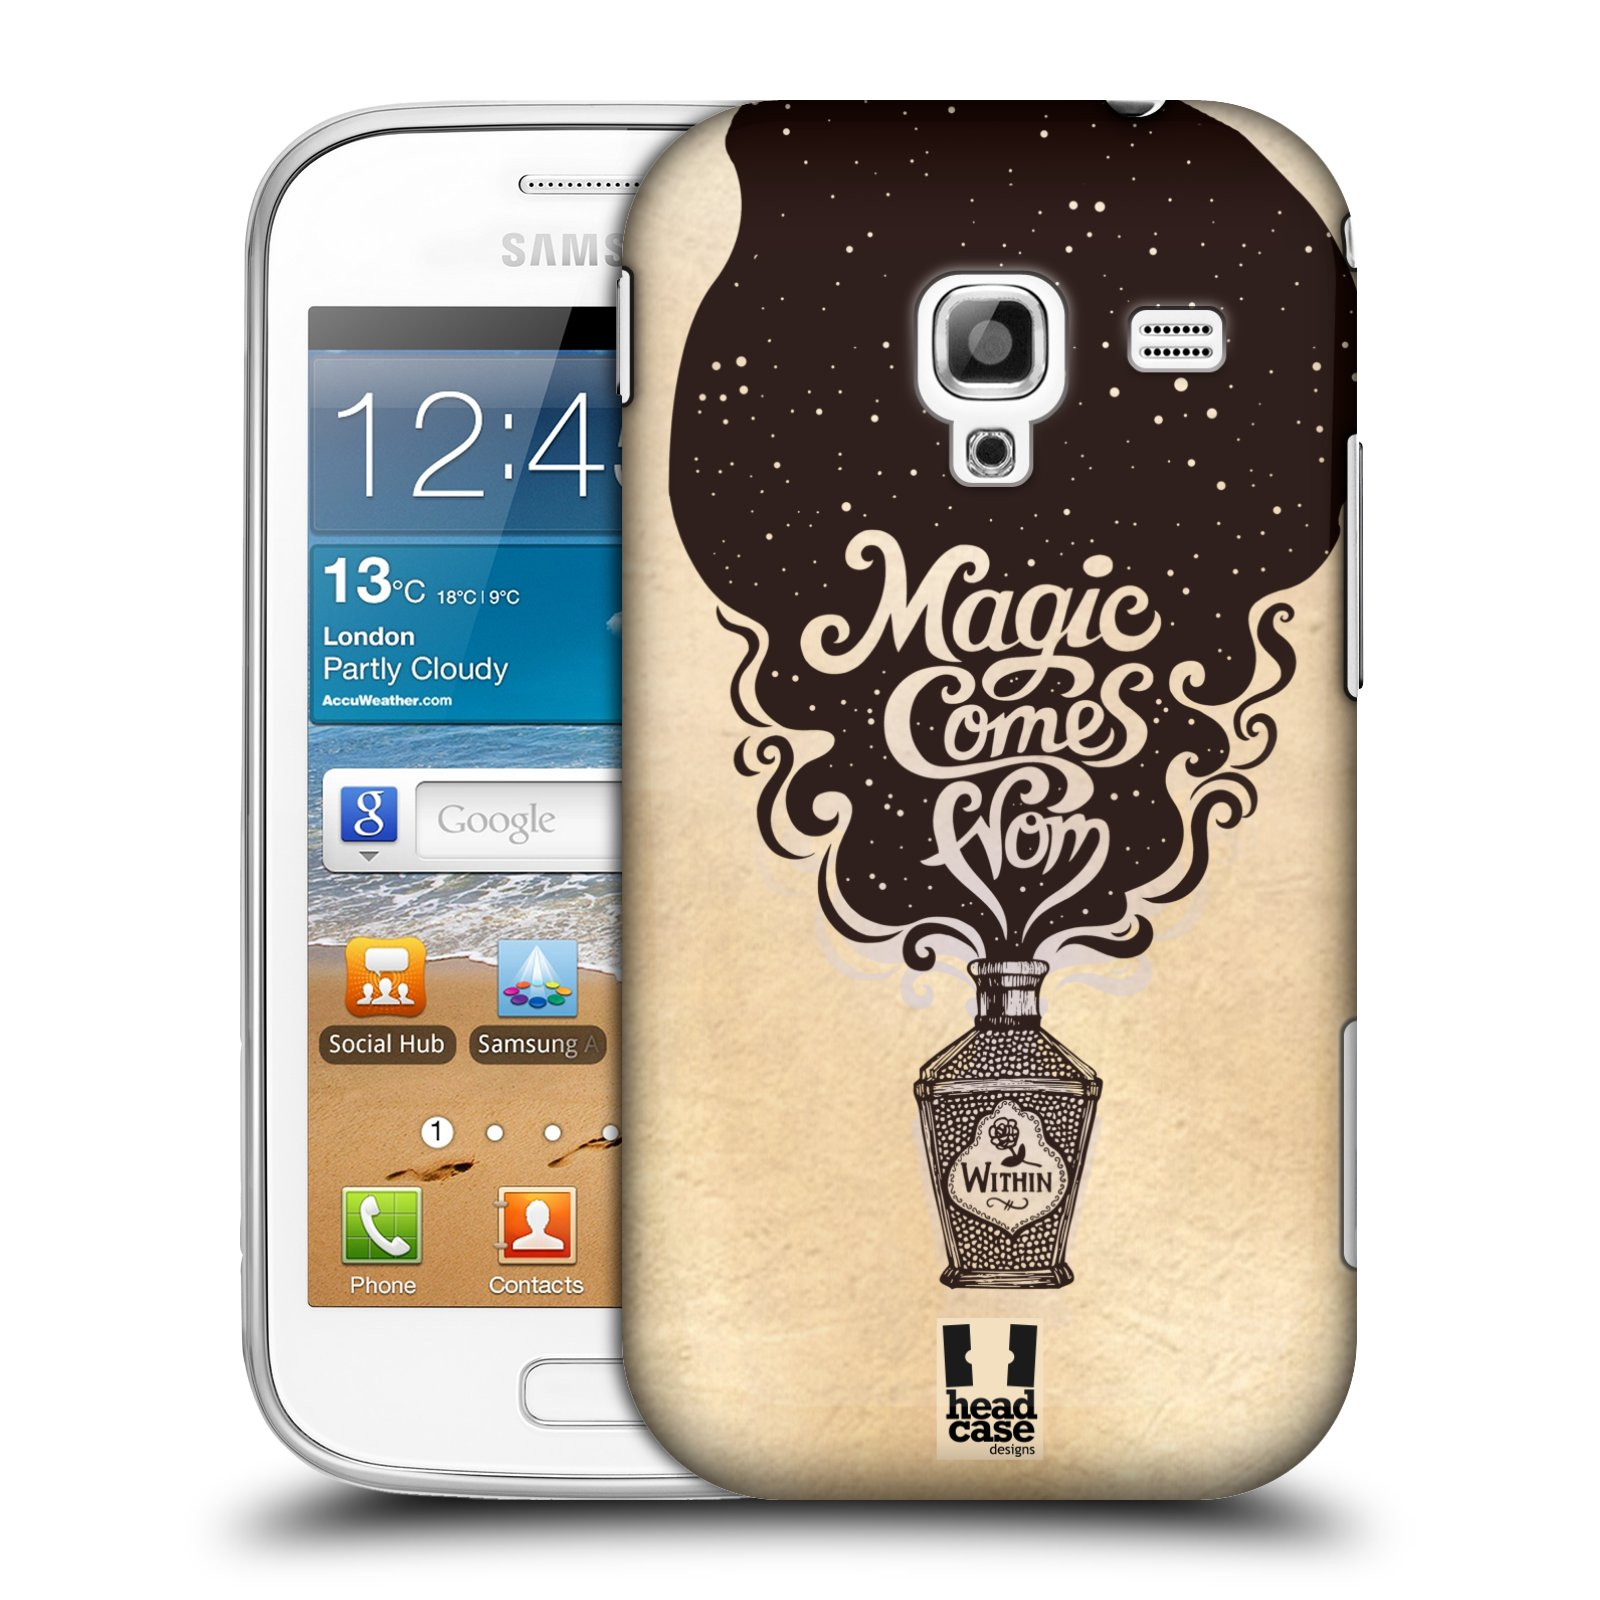 HEAD CASE DESIGNS INTROSPECTION CASE COVER FOR SAMSUNG GALAXY ACE 2 I8160